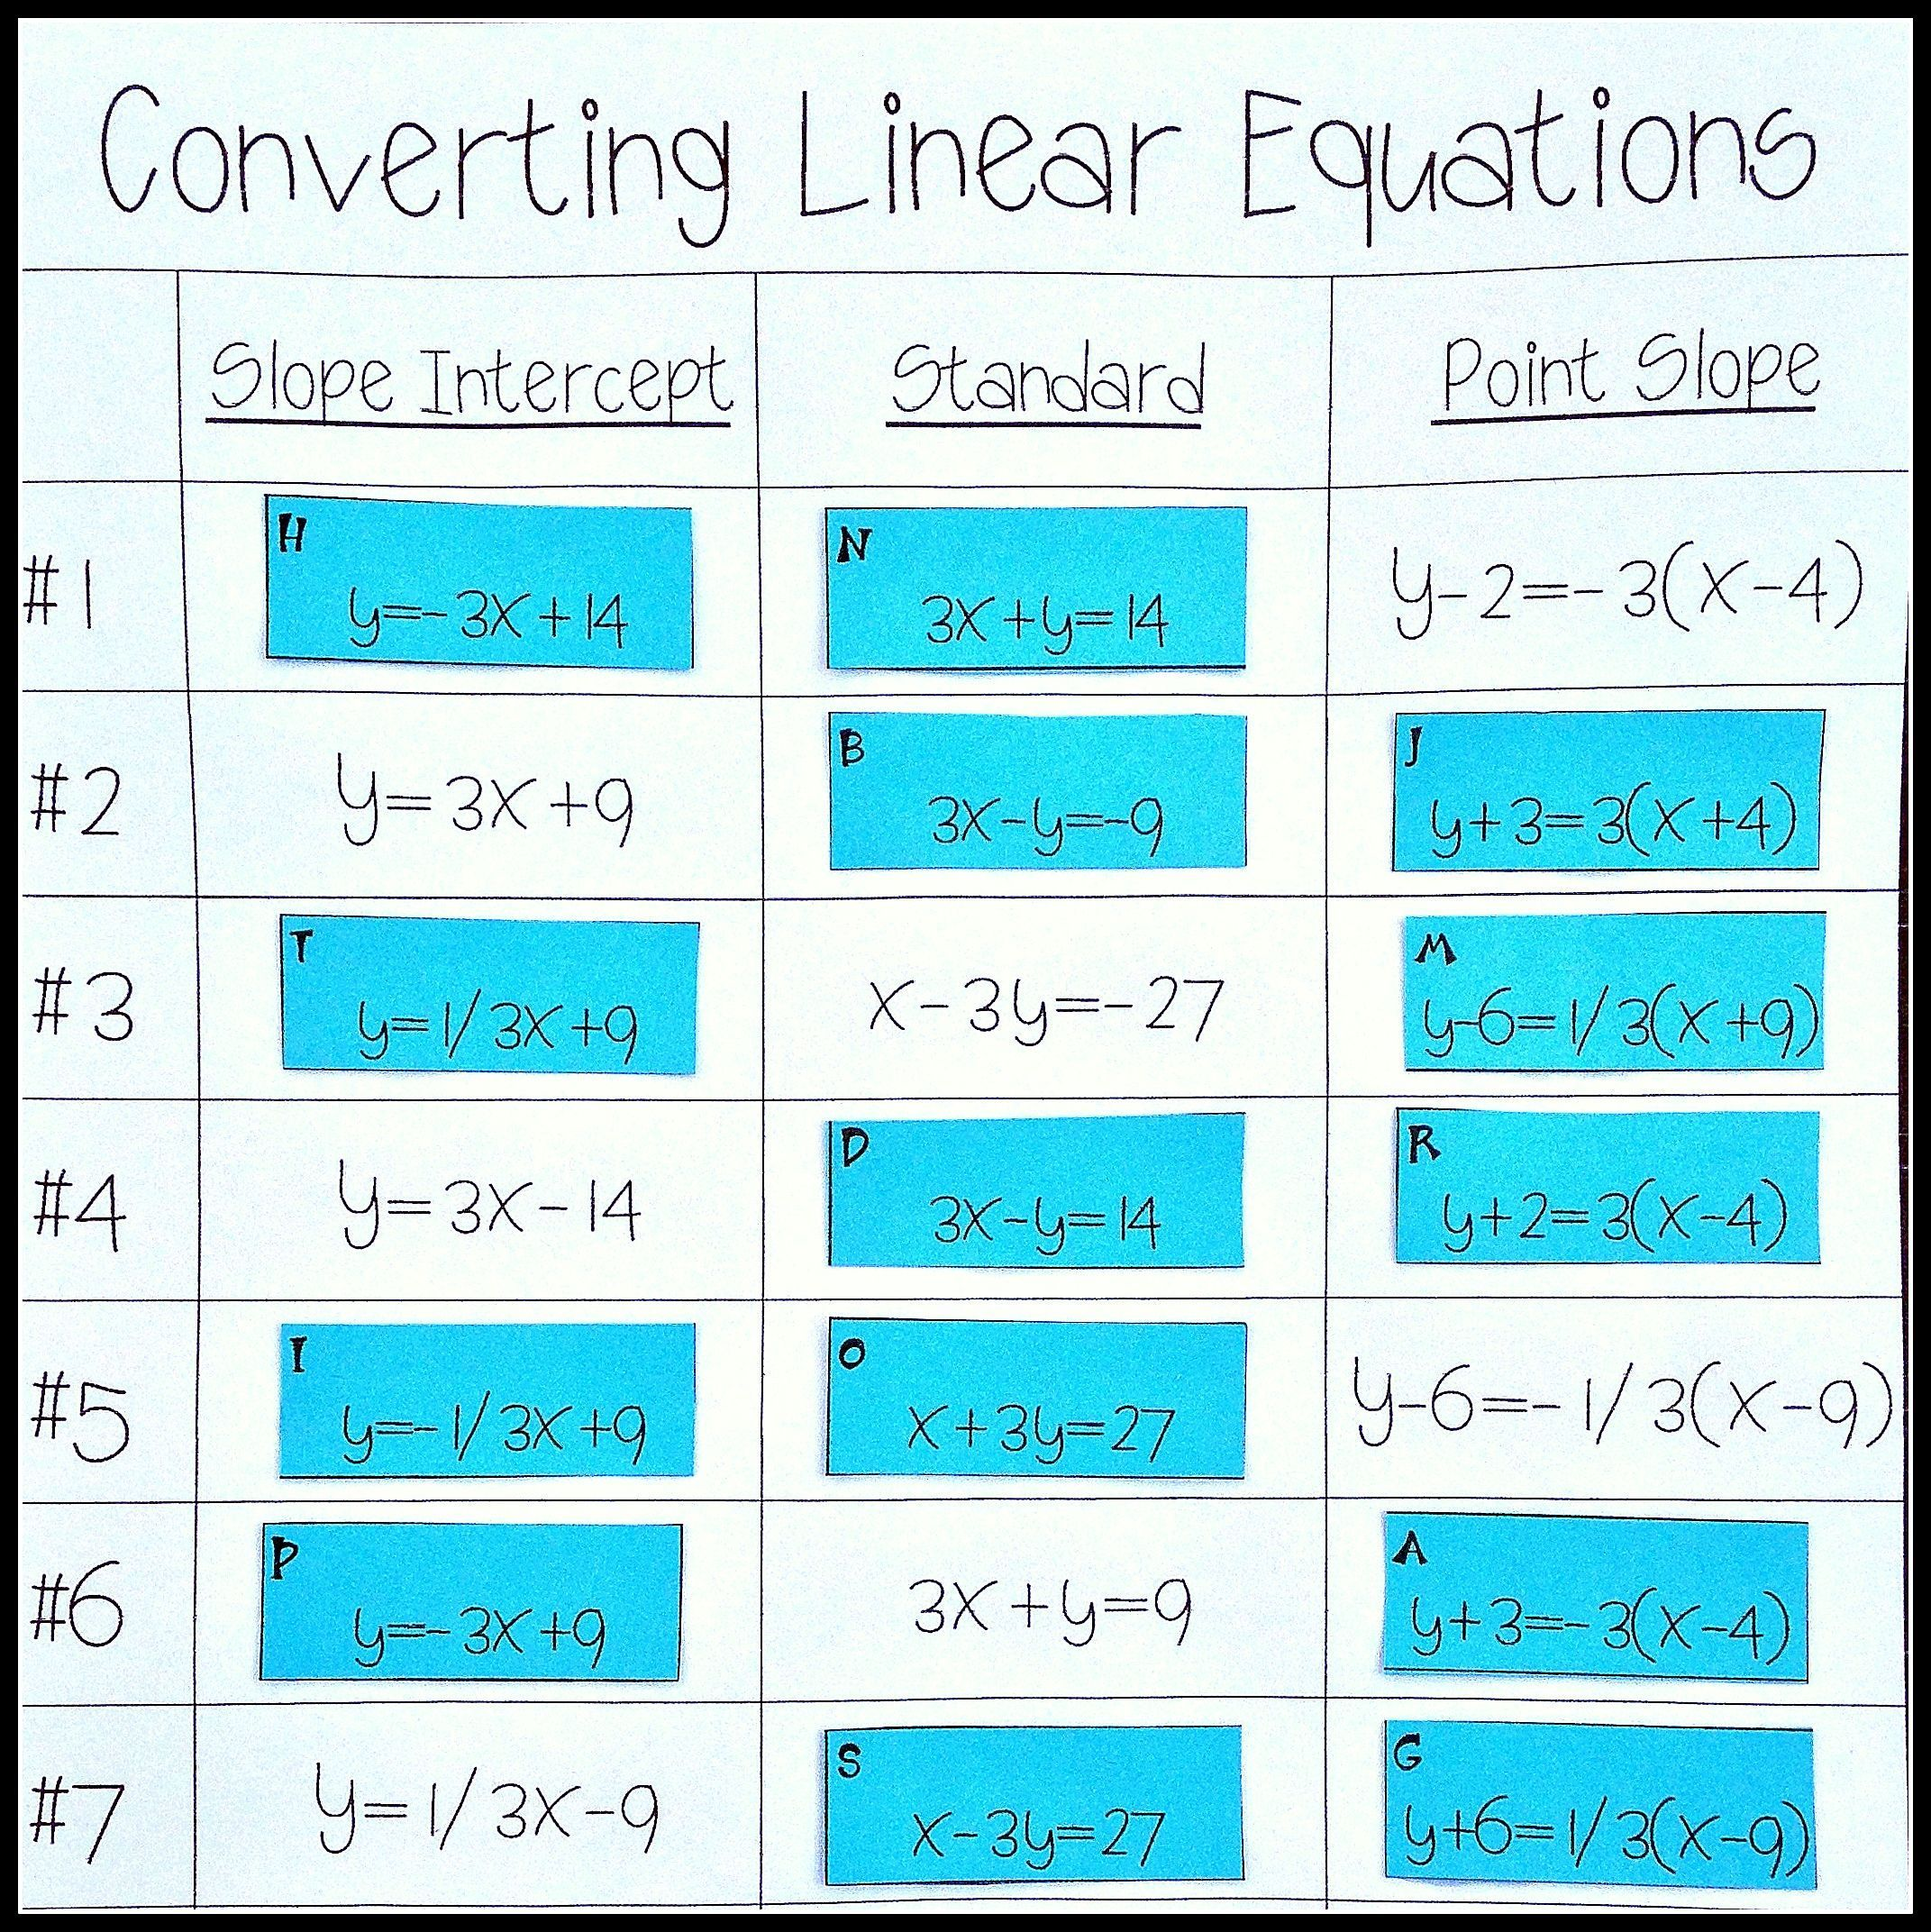 Great Practice For My Algebra Students In Converting